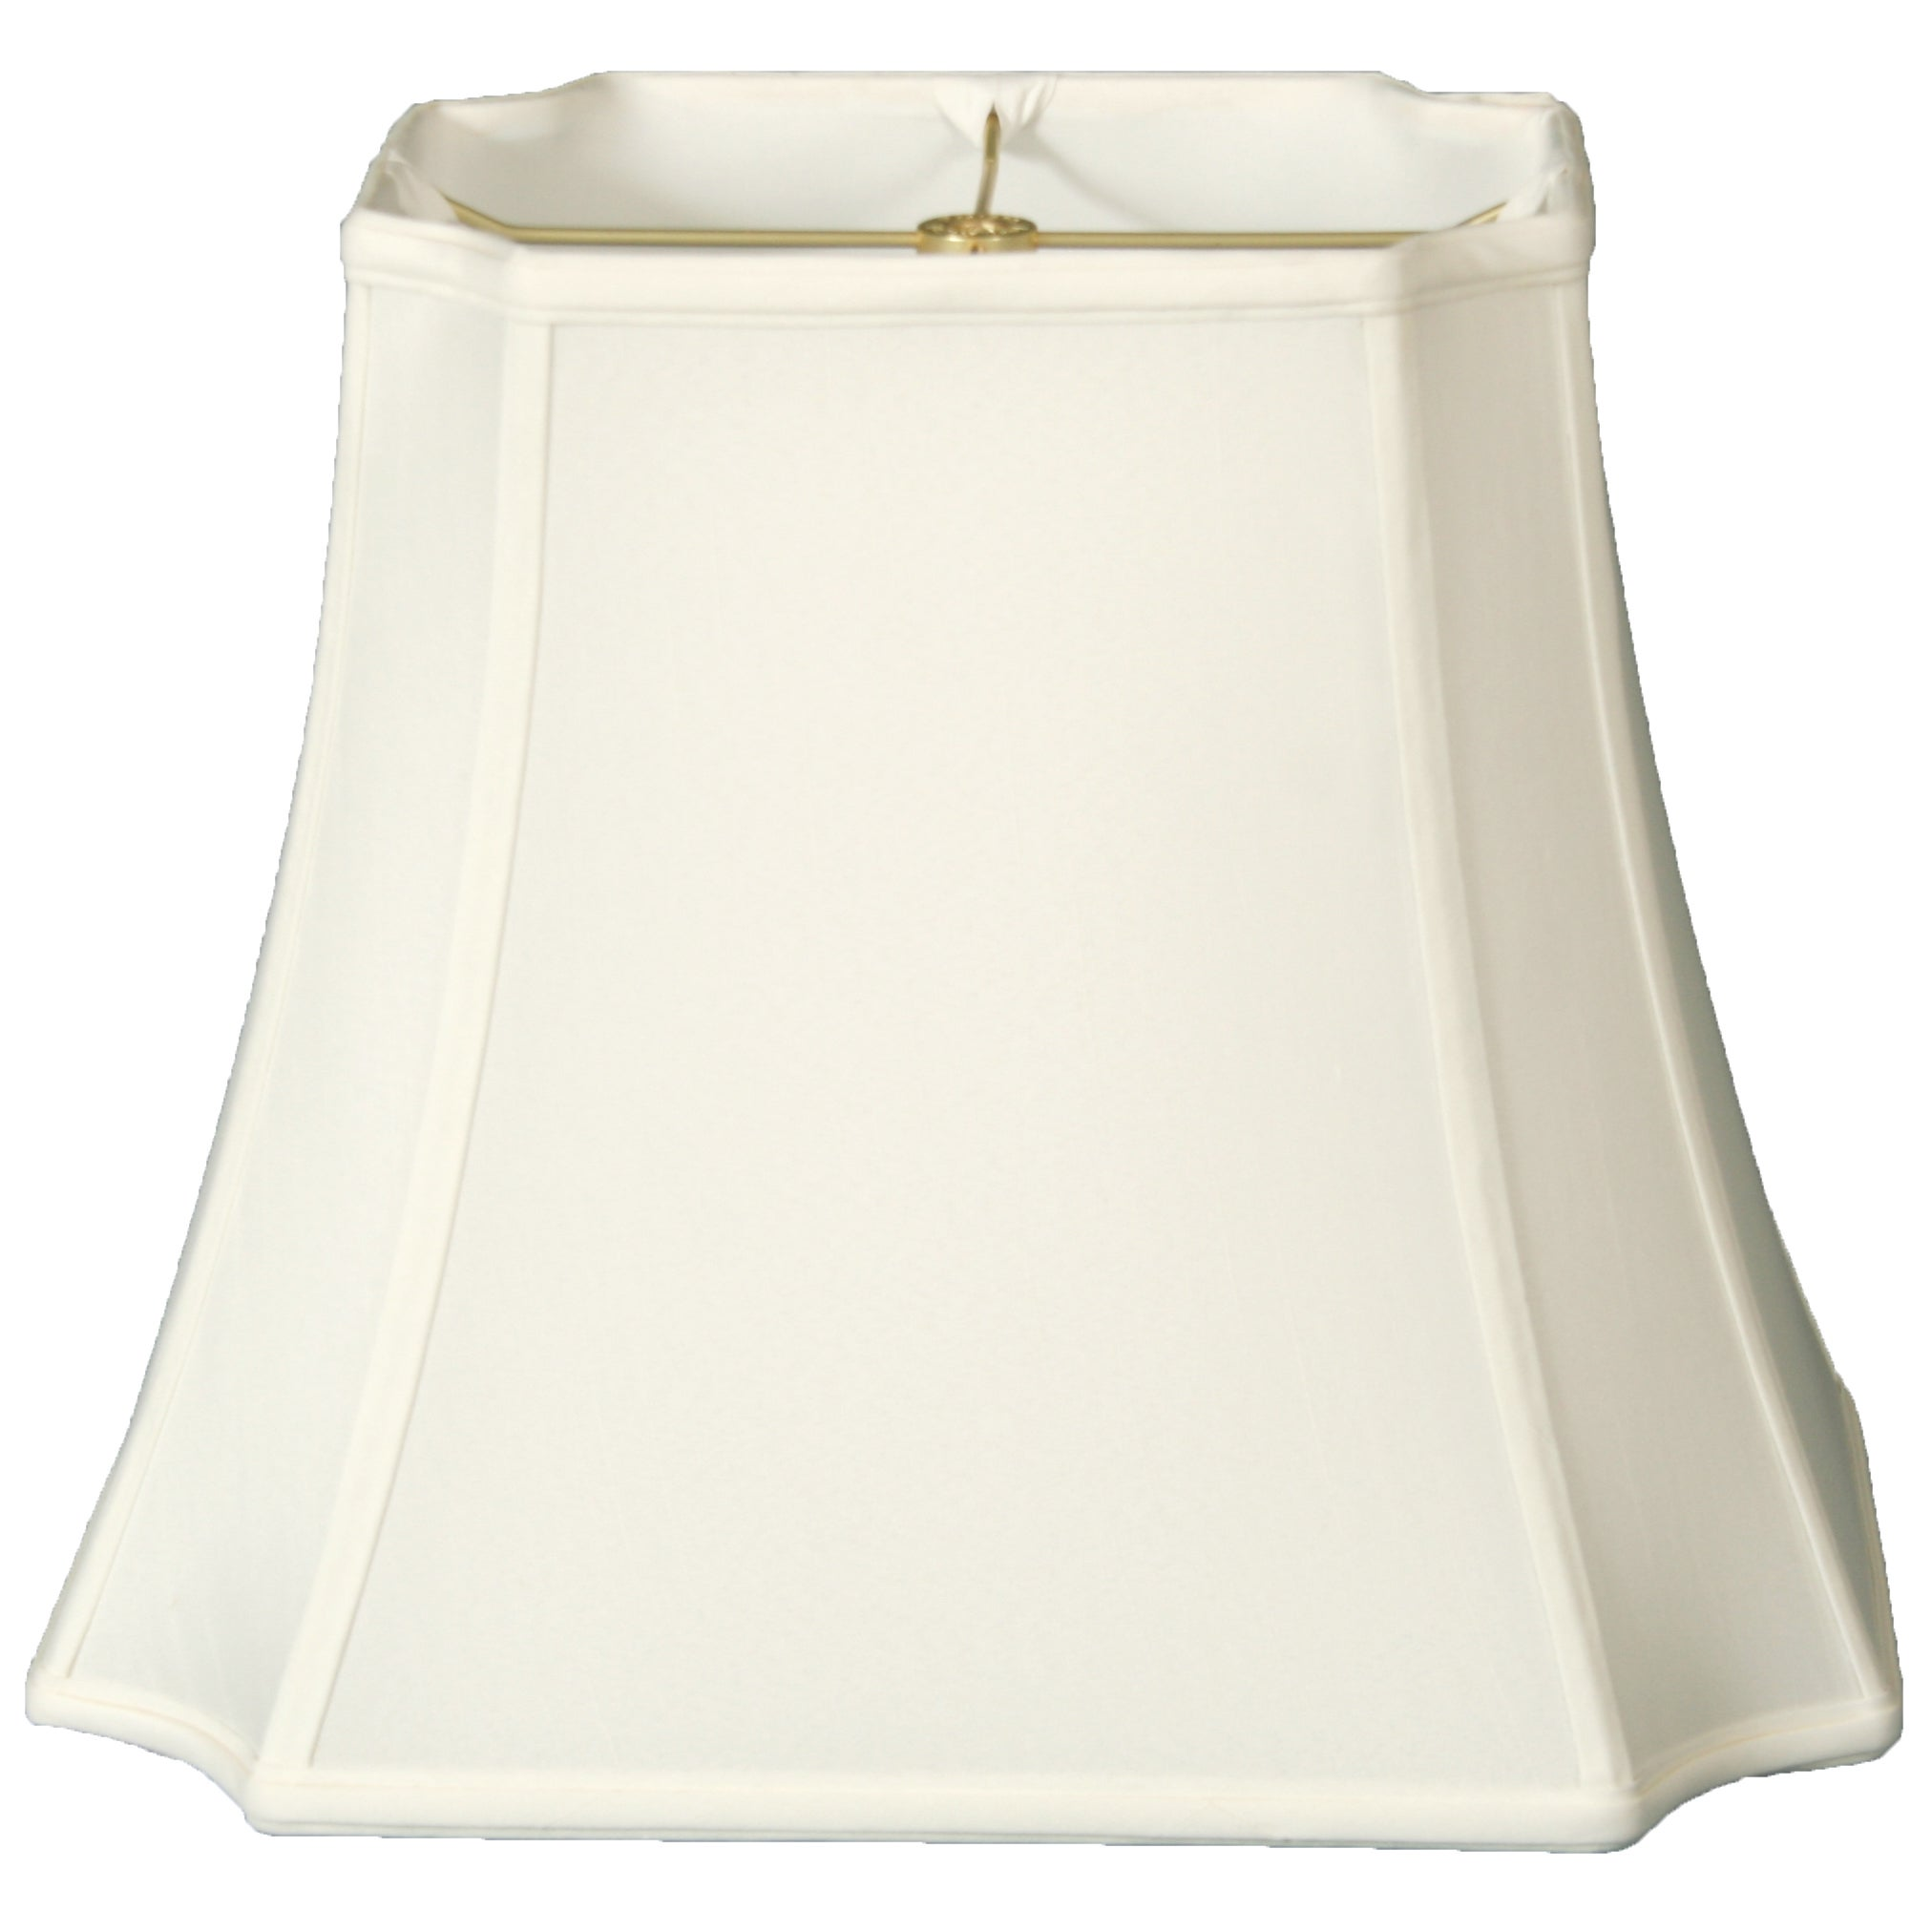 Royal Designs Rectangle Inverted Cut Corners Lamp Shade White 7 5 X 9 5 X 12 X 15 X 12 5 On Sale Overstock 14804788